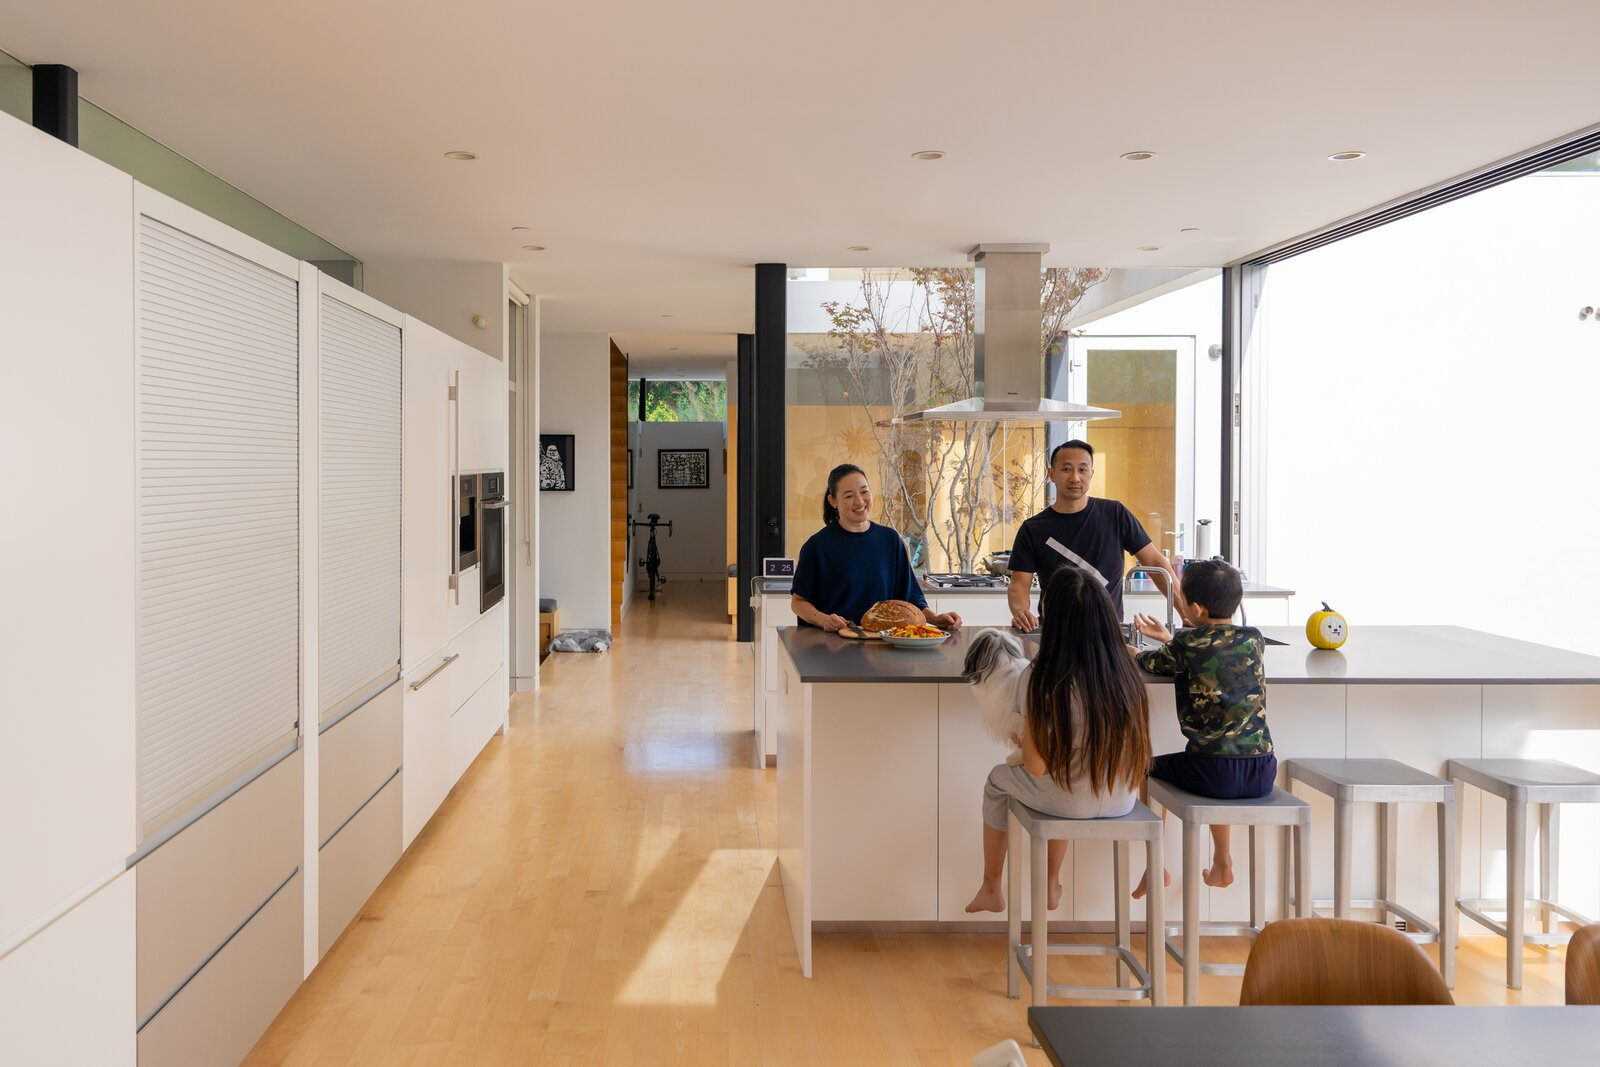 Kitchen of L House by Lee + Mundwiler Architects